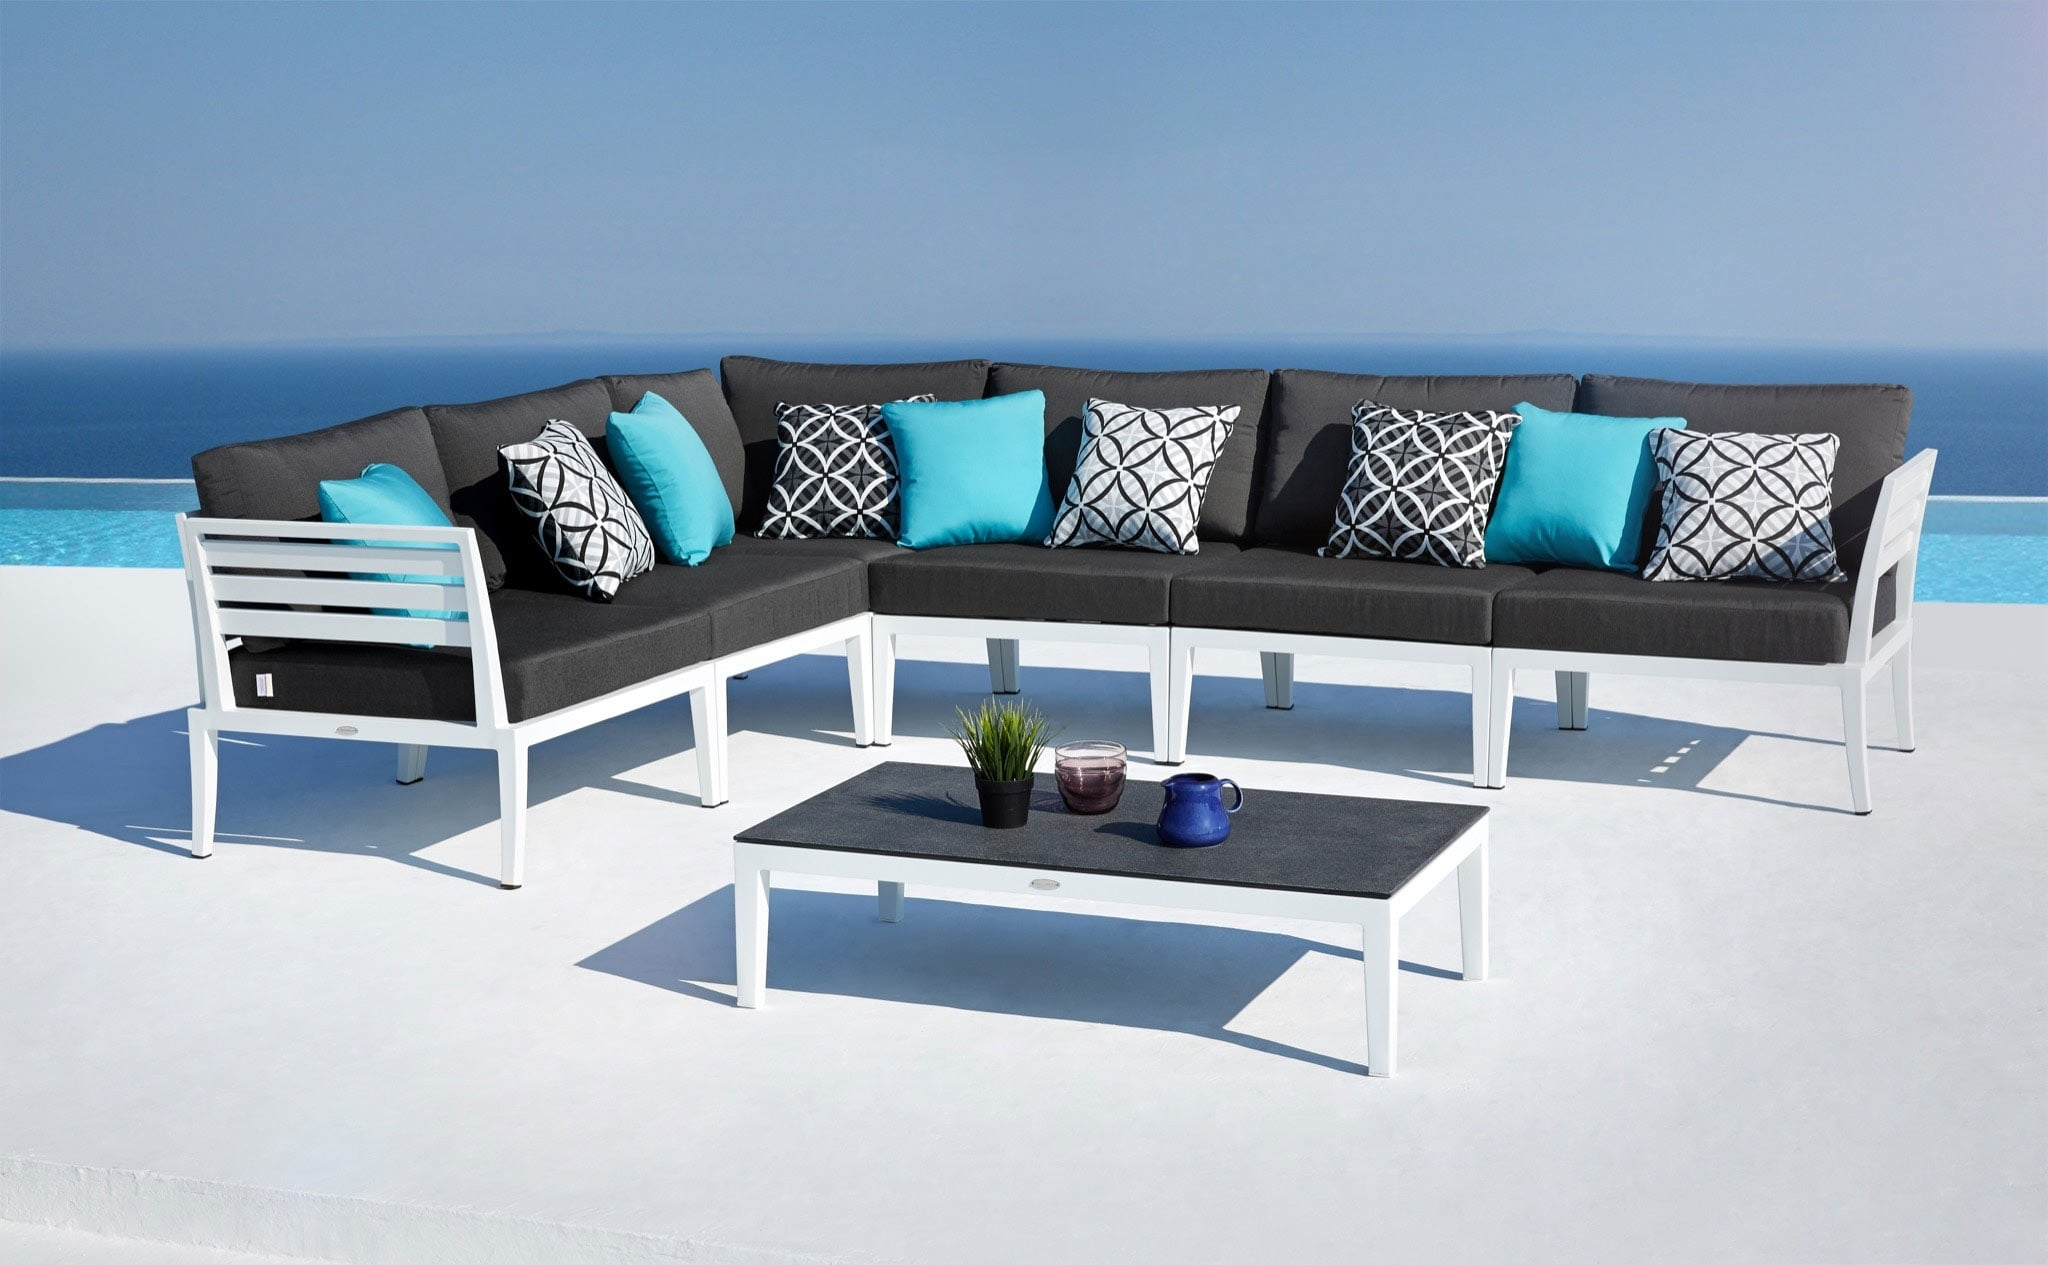 Image of: Modern Outdoor Lounge Furniture Set Joins Oceanweave Collection With Regard To Outdoor Lounge Furniture Modern Outdoor Lounge Furniture Modern Design